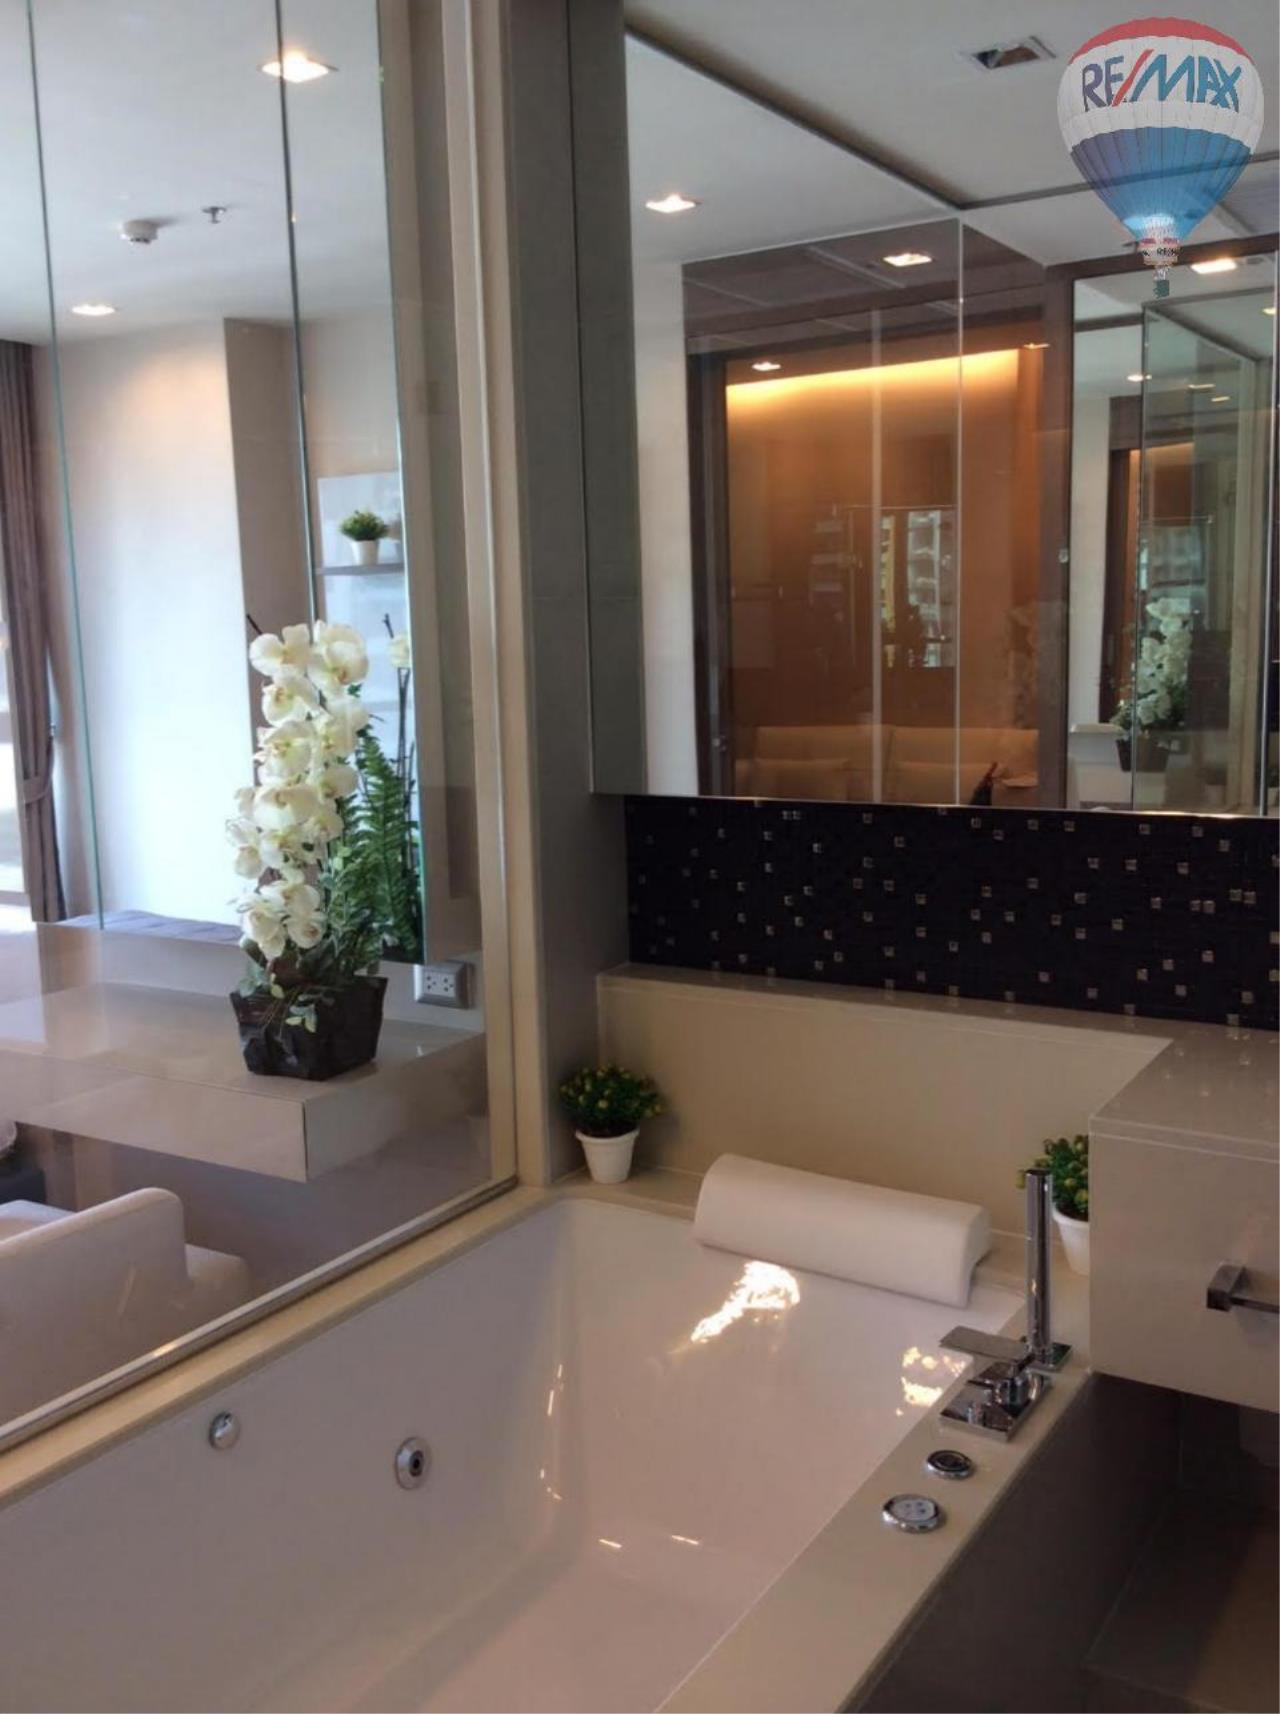 RE/MAX Properties Agency's 1 Bedroom 46.5 Sq.M. for sale in The Address Sathorn 3